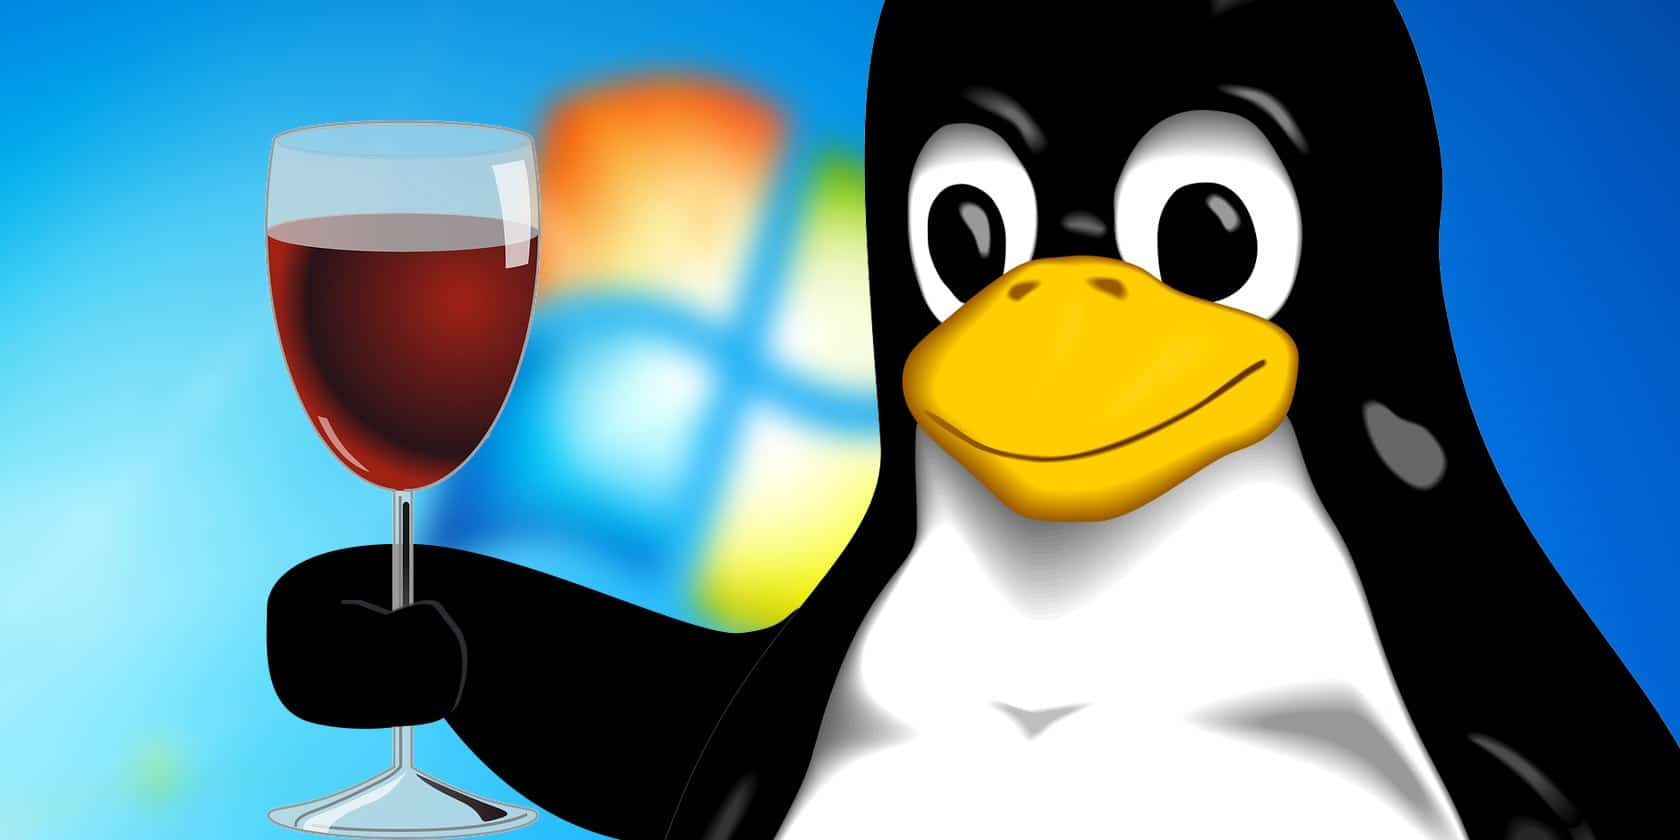 How To Run Windows Applications And Games On Linux - OSTechNix